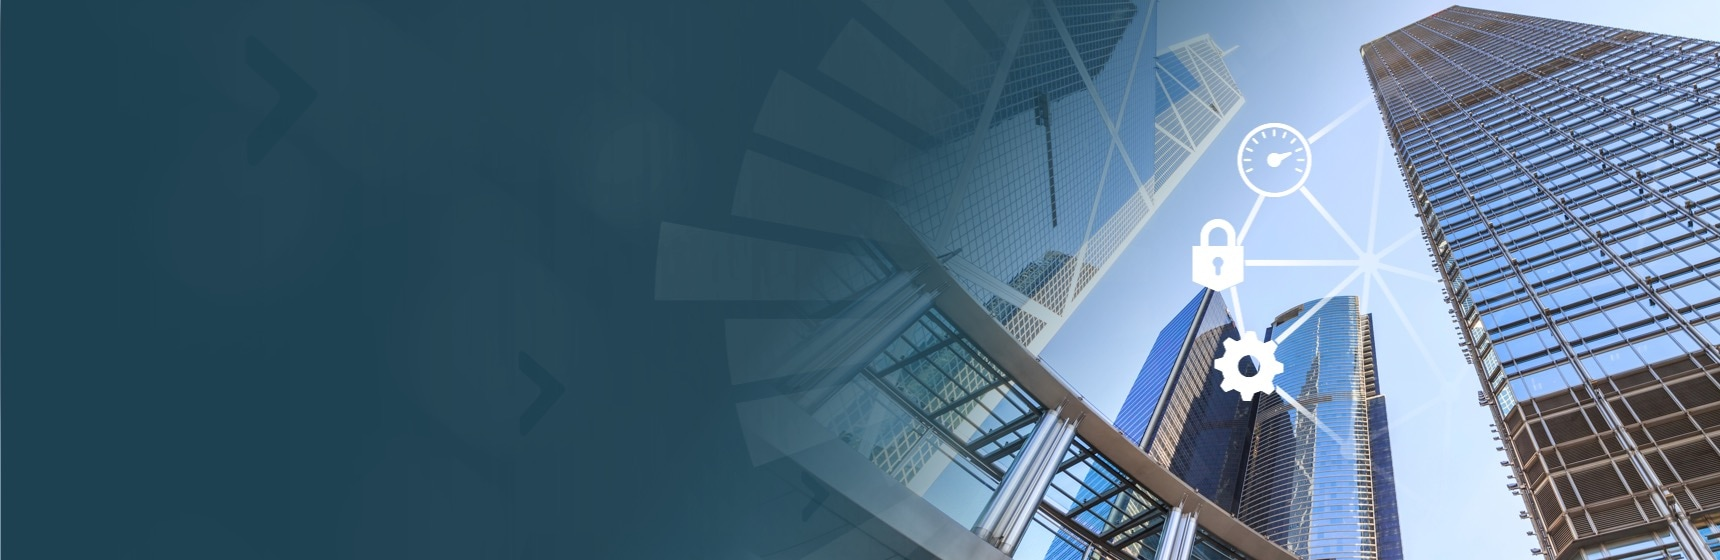 Oracle Sverige | Integrated Cloud Applications and Platform